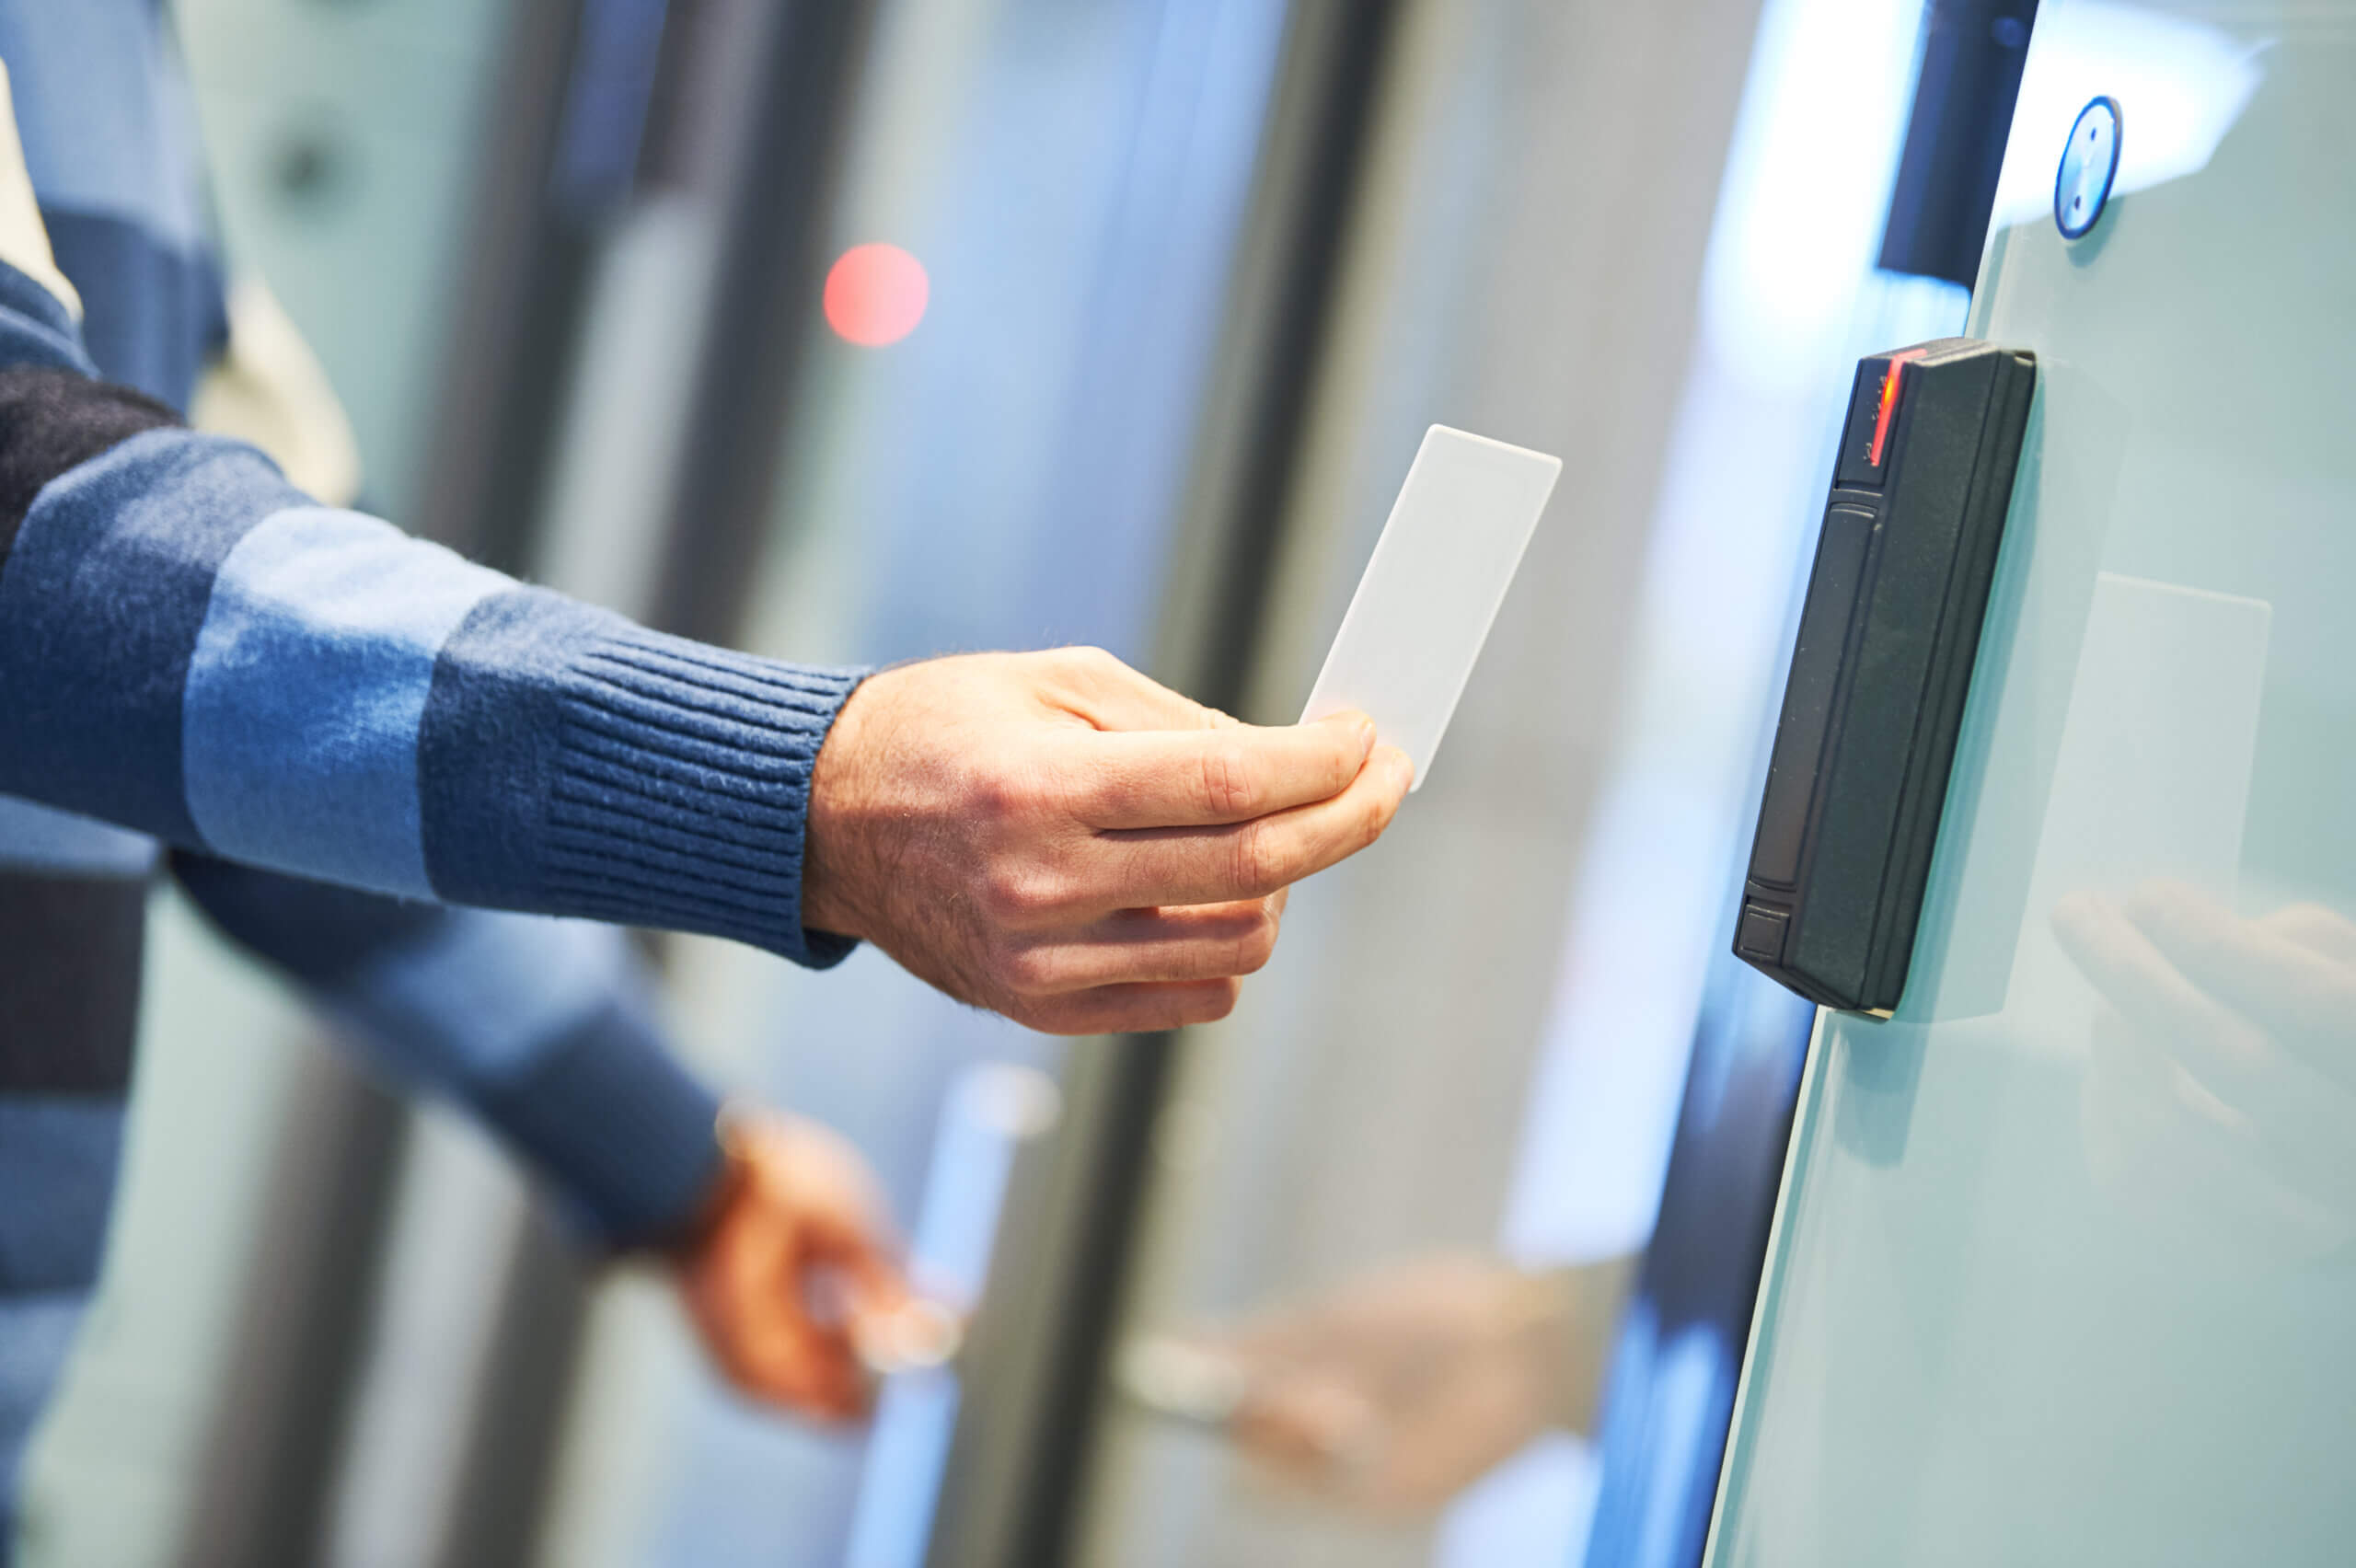 Arcules Expands Access Control Support Through Integration With Keep Platform by Feenics